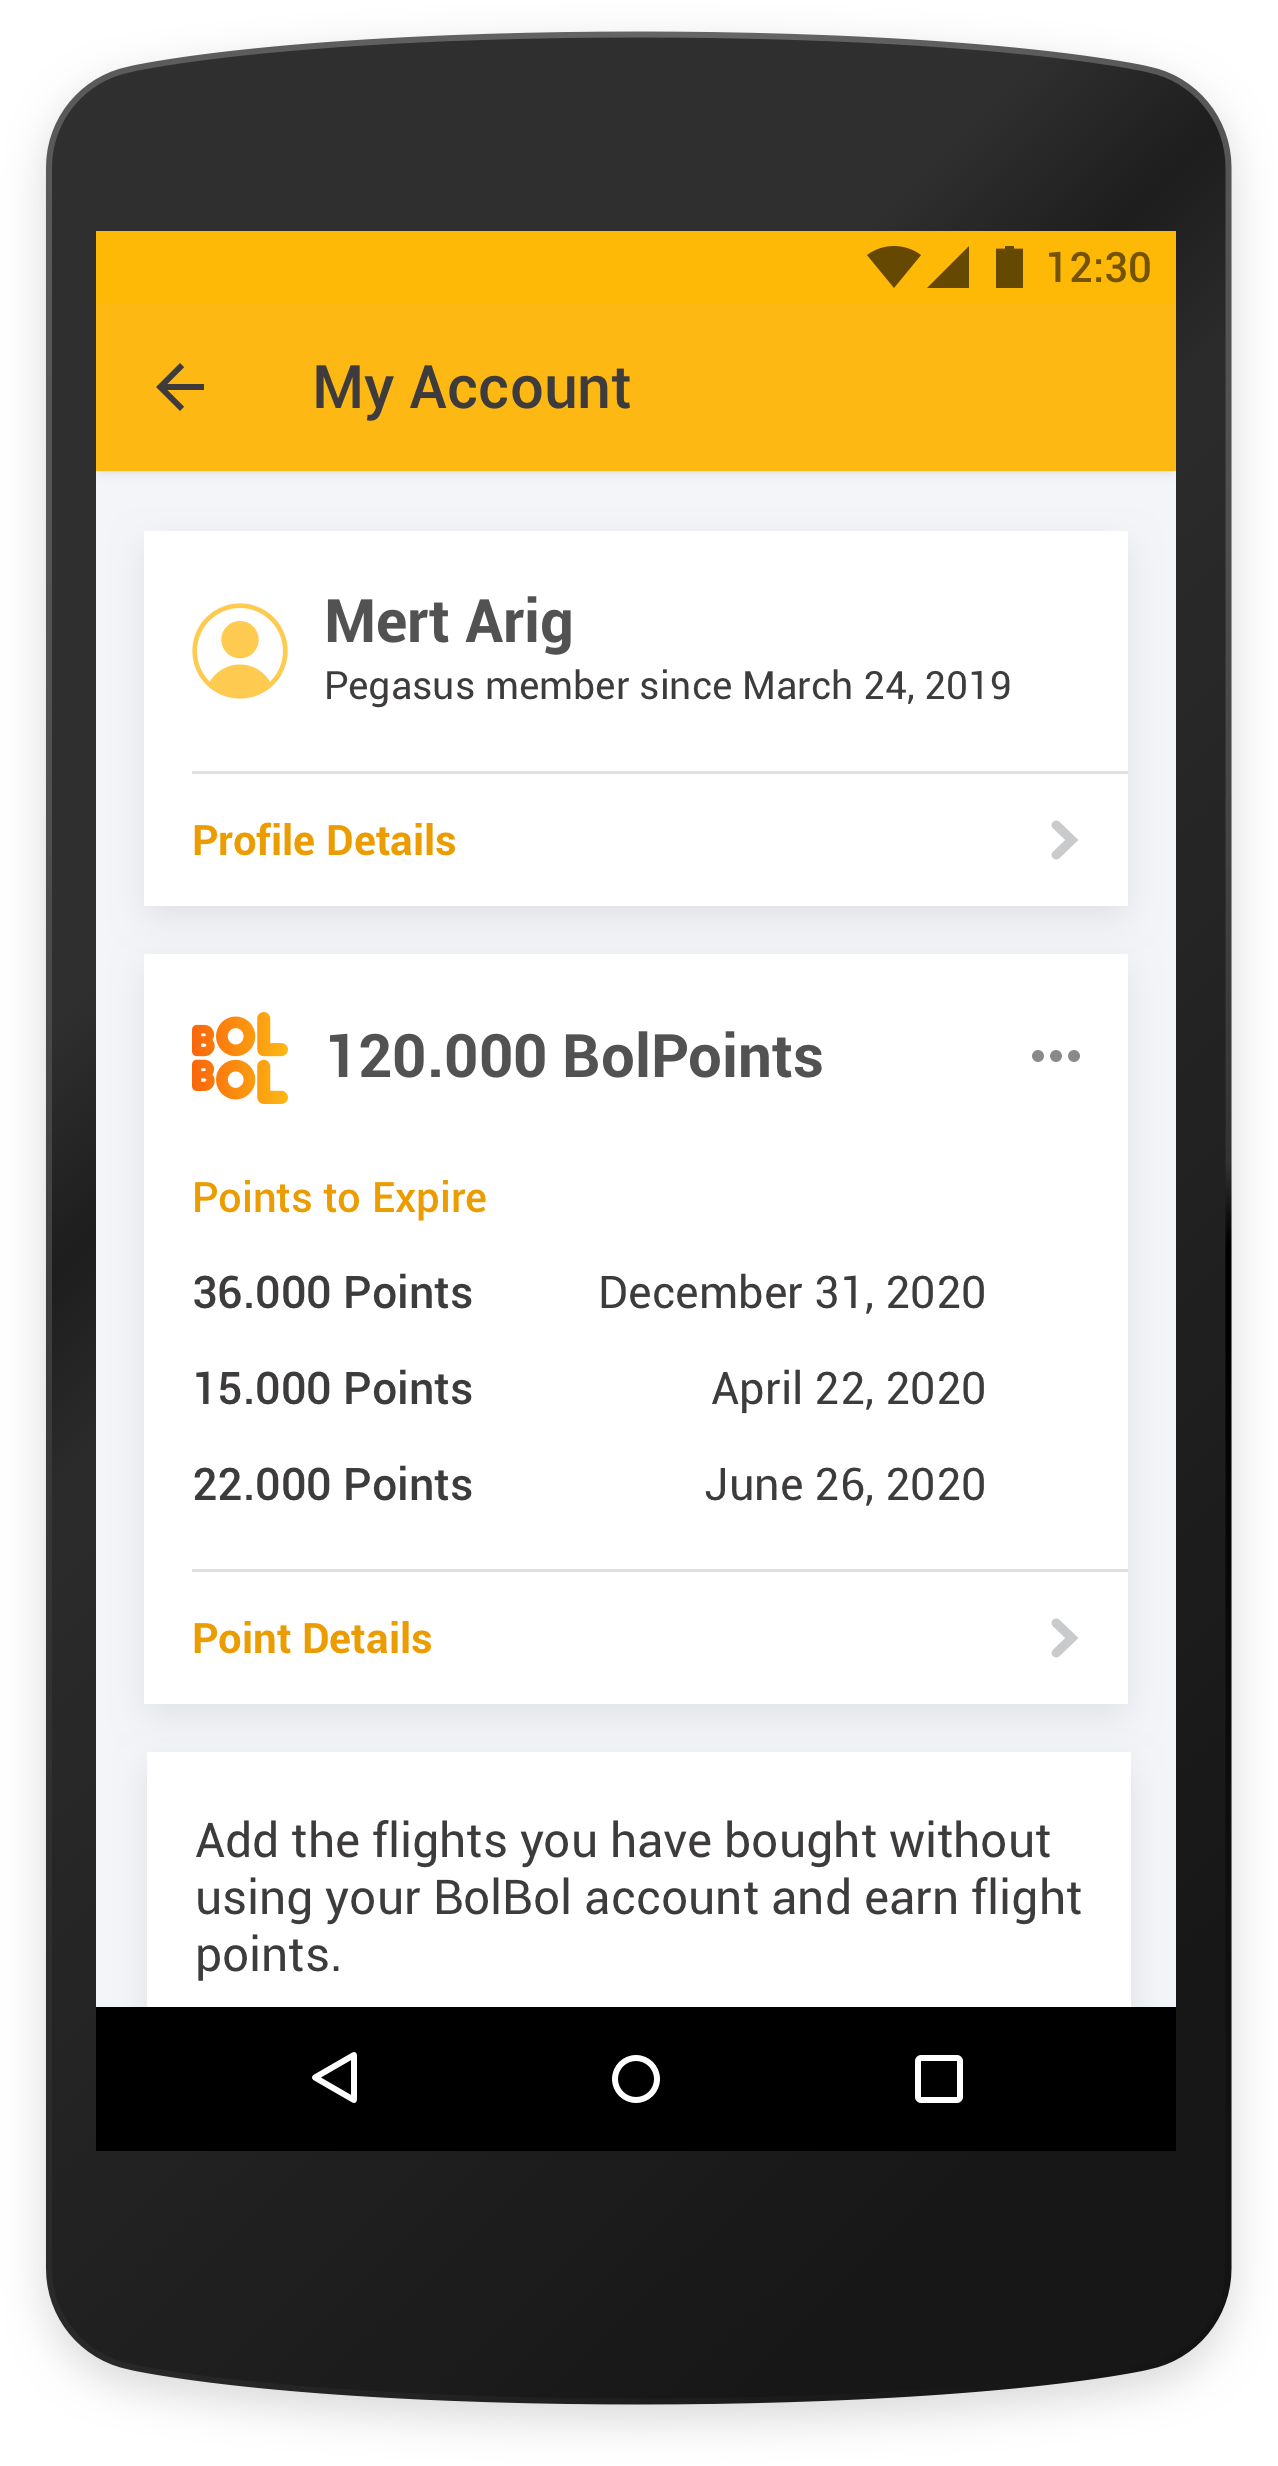 pegasus airlines mobile app account page